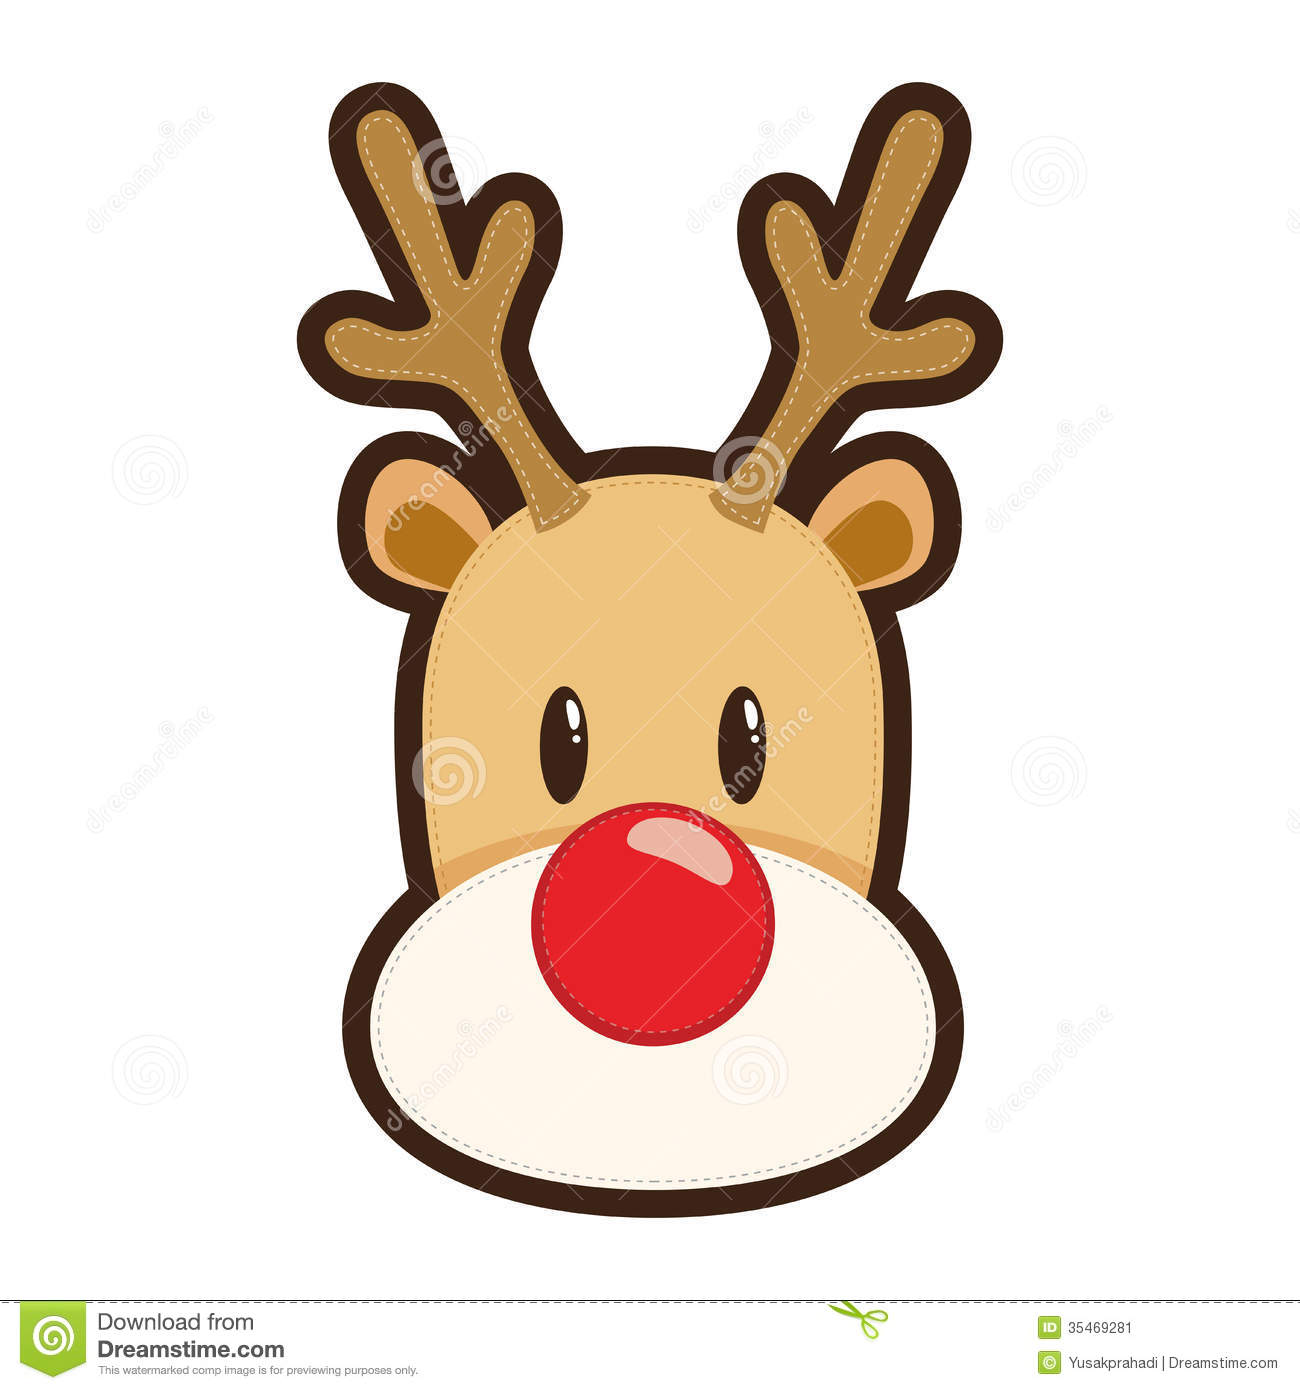 graphic download Rudolph clipart. Cartoon the red nosed.